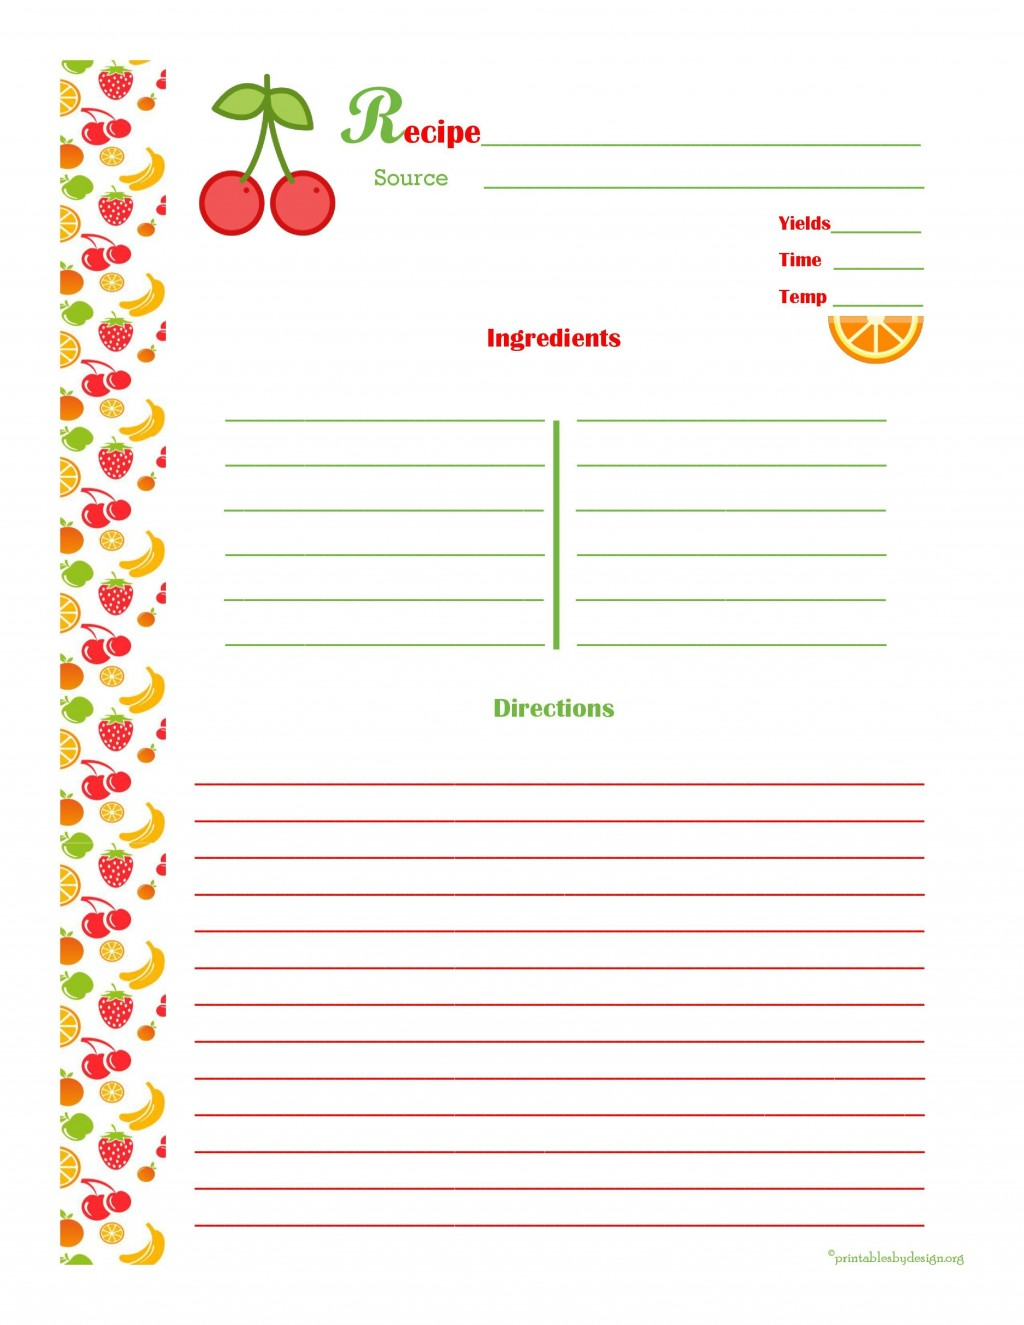 013 Imposing Free Recipe Template For Word Highest Quality  Book Editable Card Microsoft 4x6 PageLarge